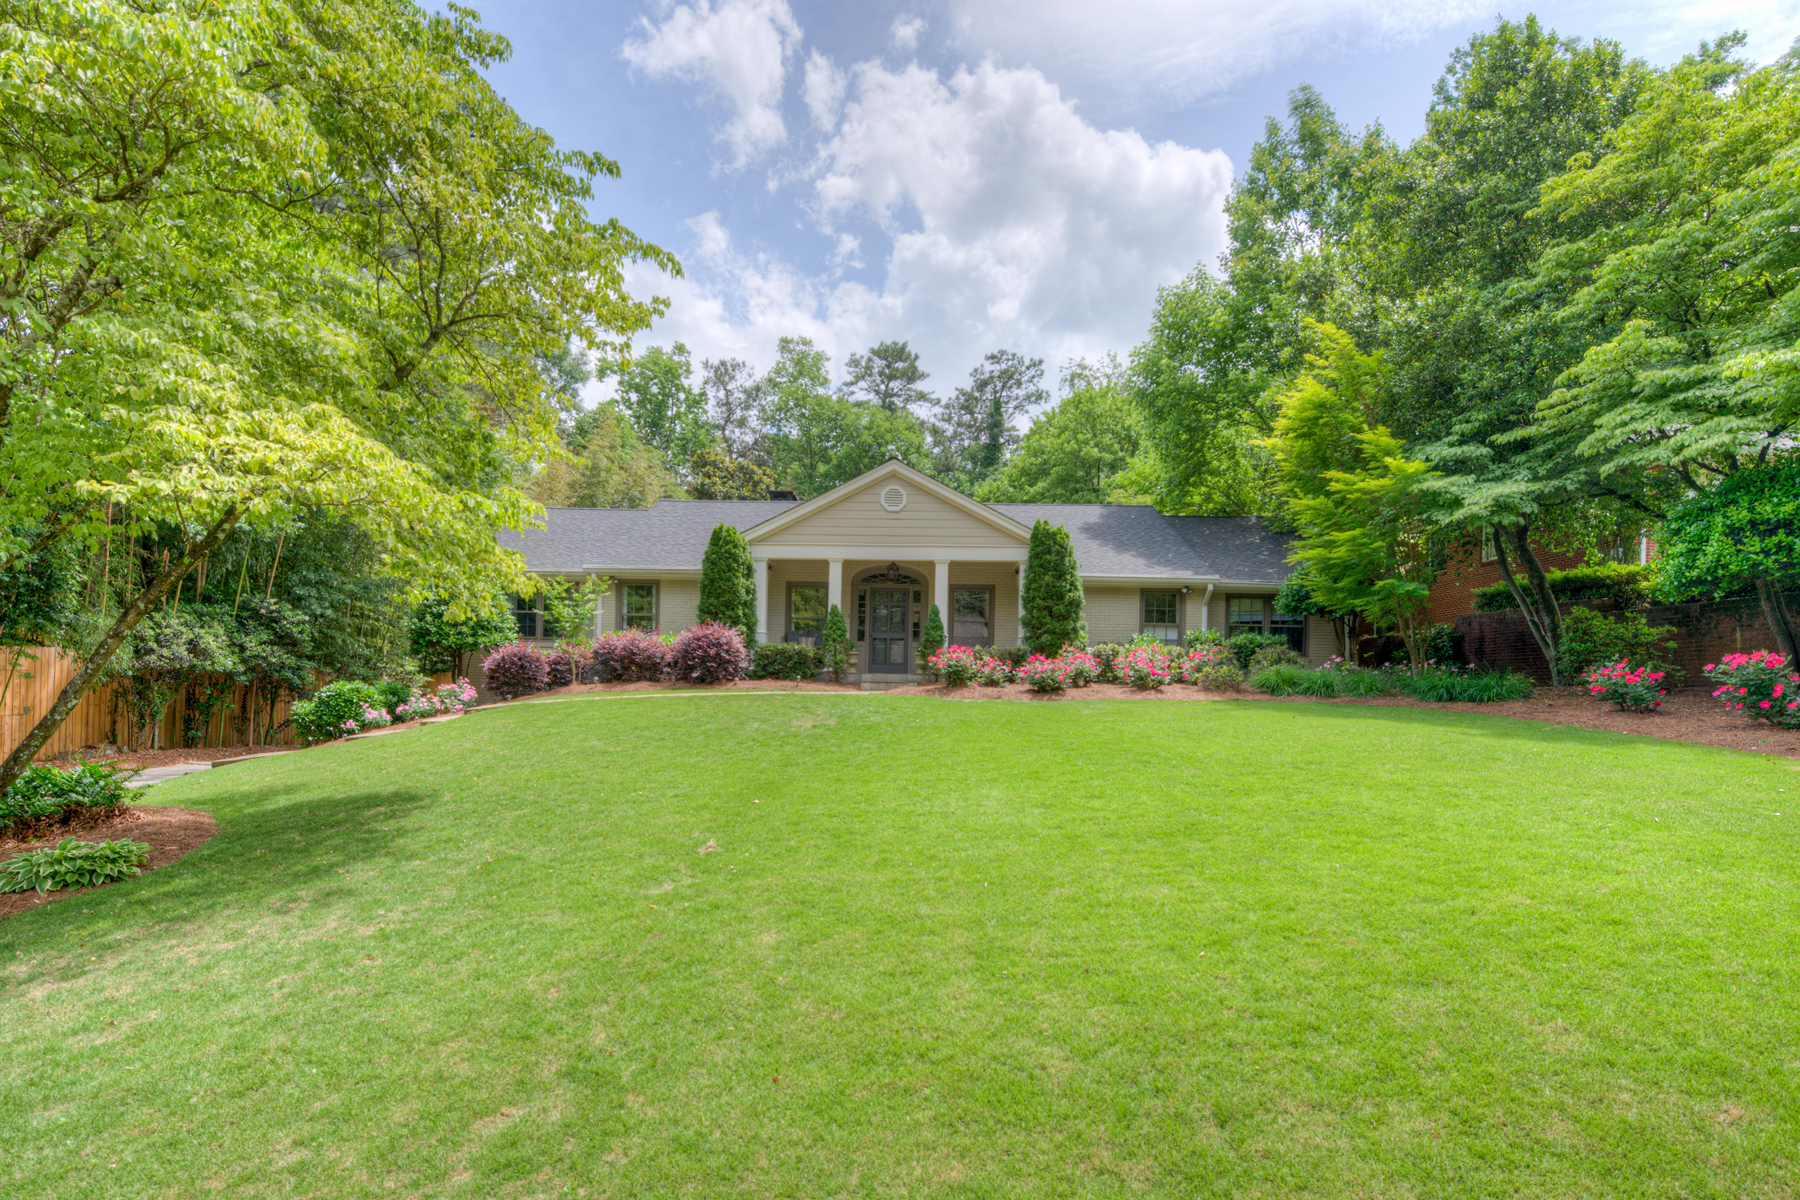 Single Family Home for Sale at Gorgeous Four Bedroom Home in Chastain Park 201 Laurel Forest Circle NE Chastain Park, Atlanta, Georgia 30342 United States